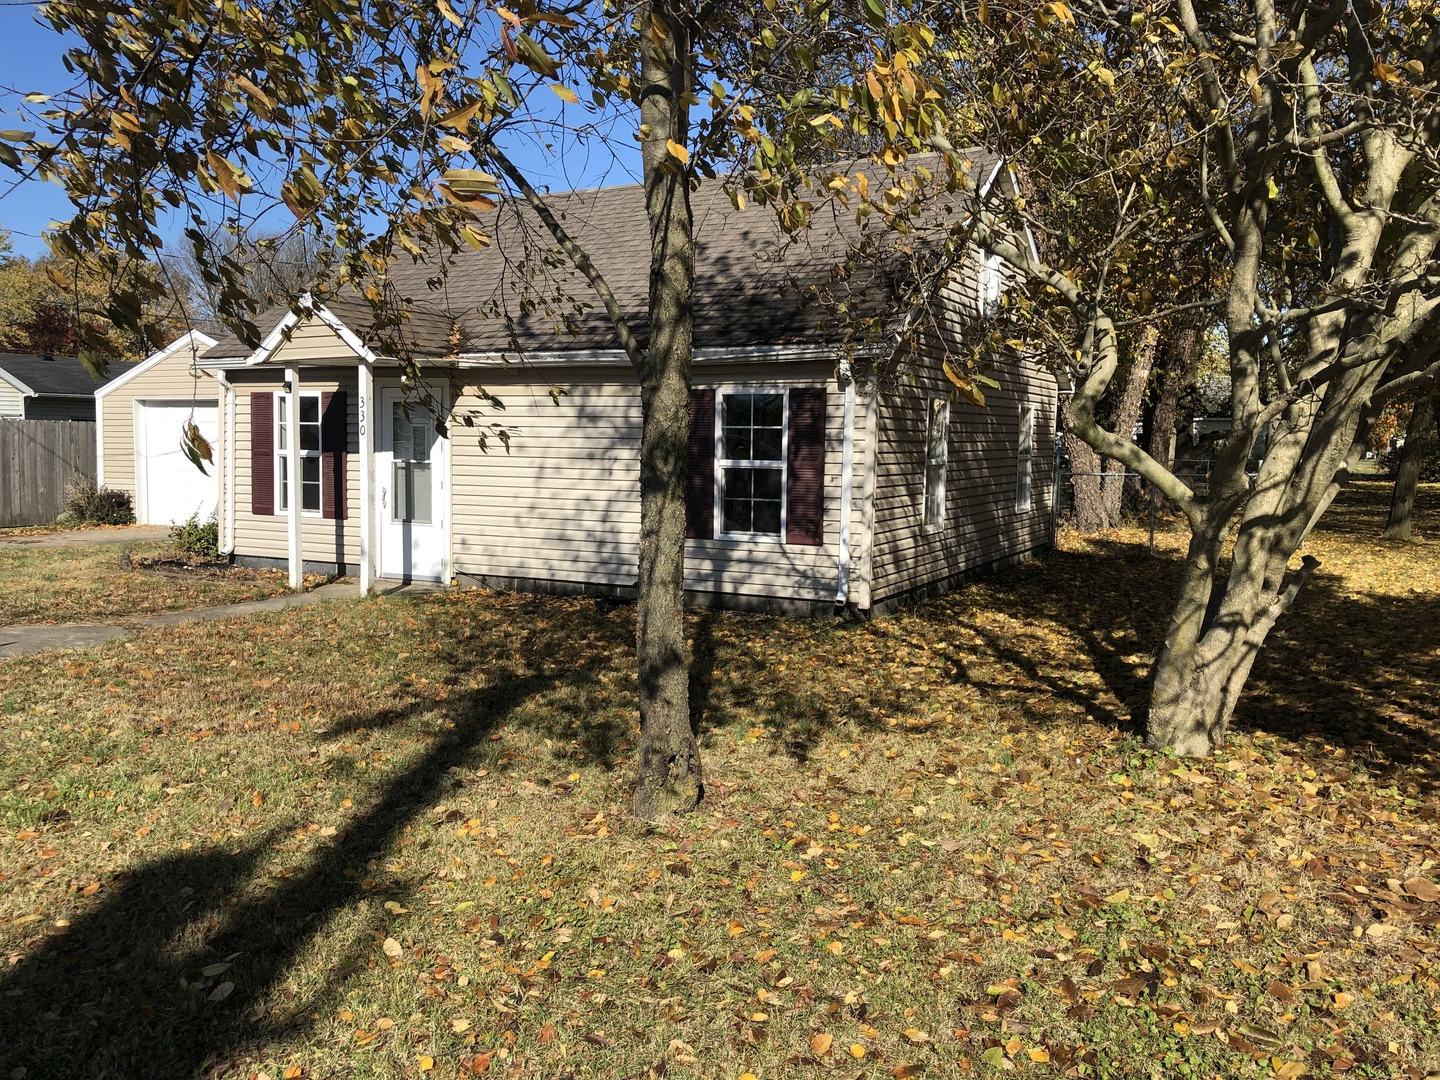 330 Central, Atwood, Illinois, 61913